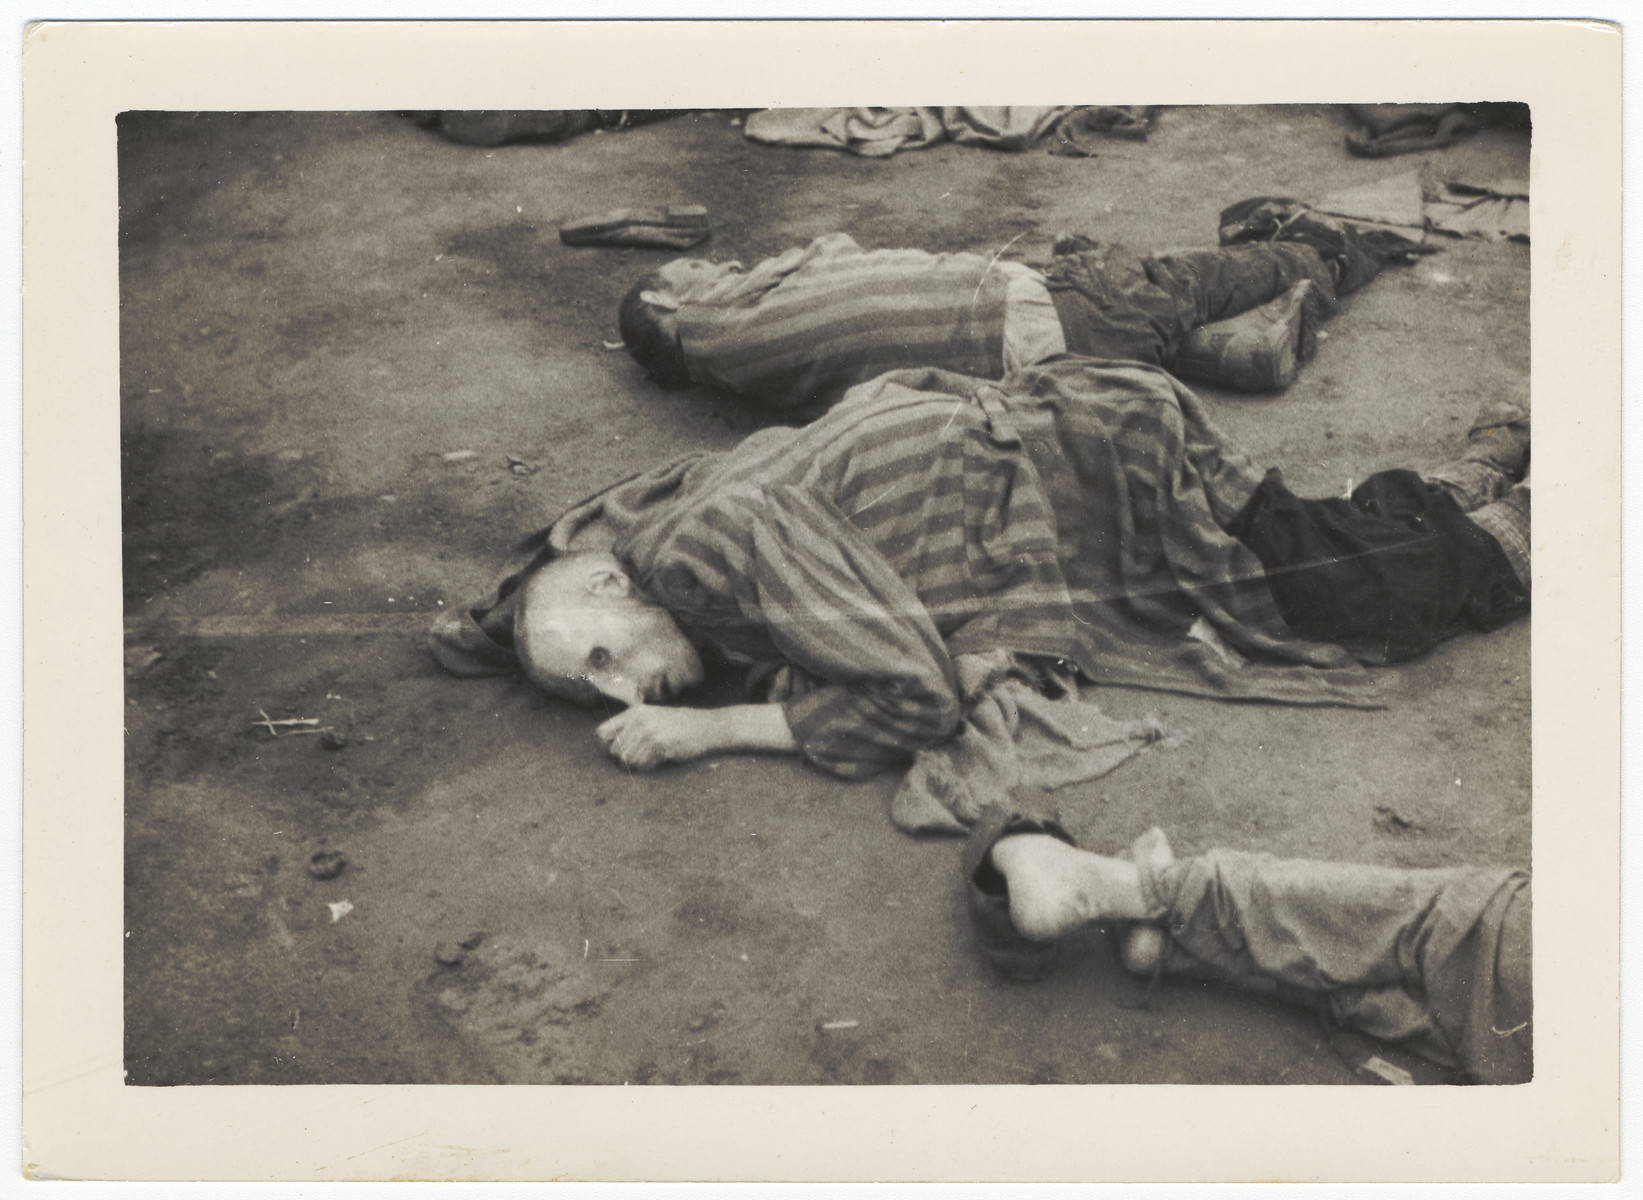 Bodies of Ohrdruf prisoners who were killed during the evacuation of the concentration camp.